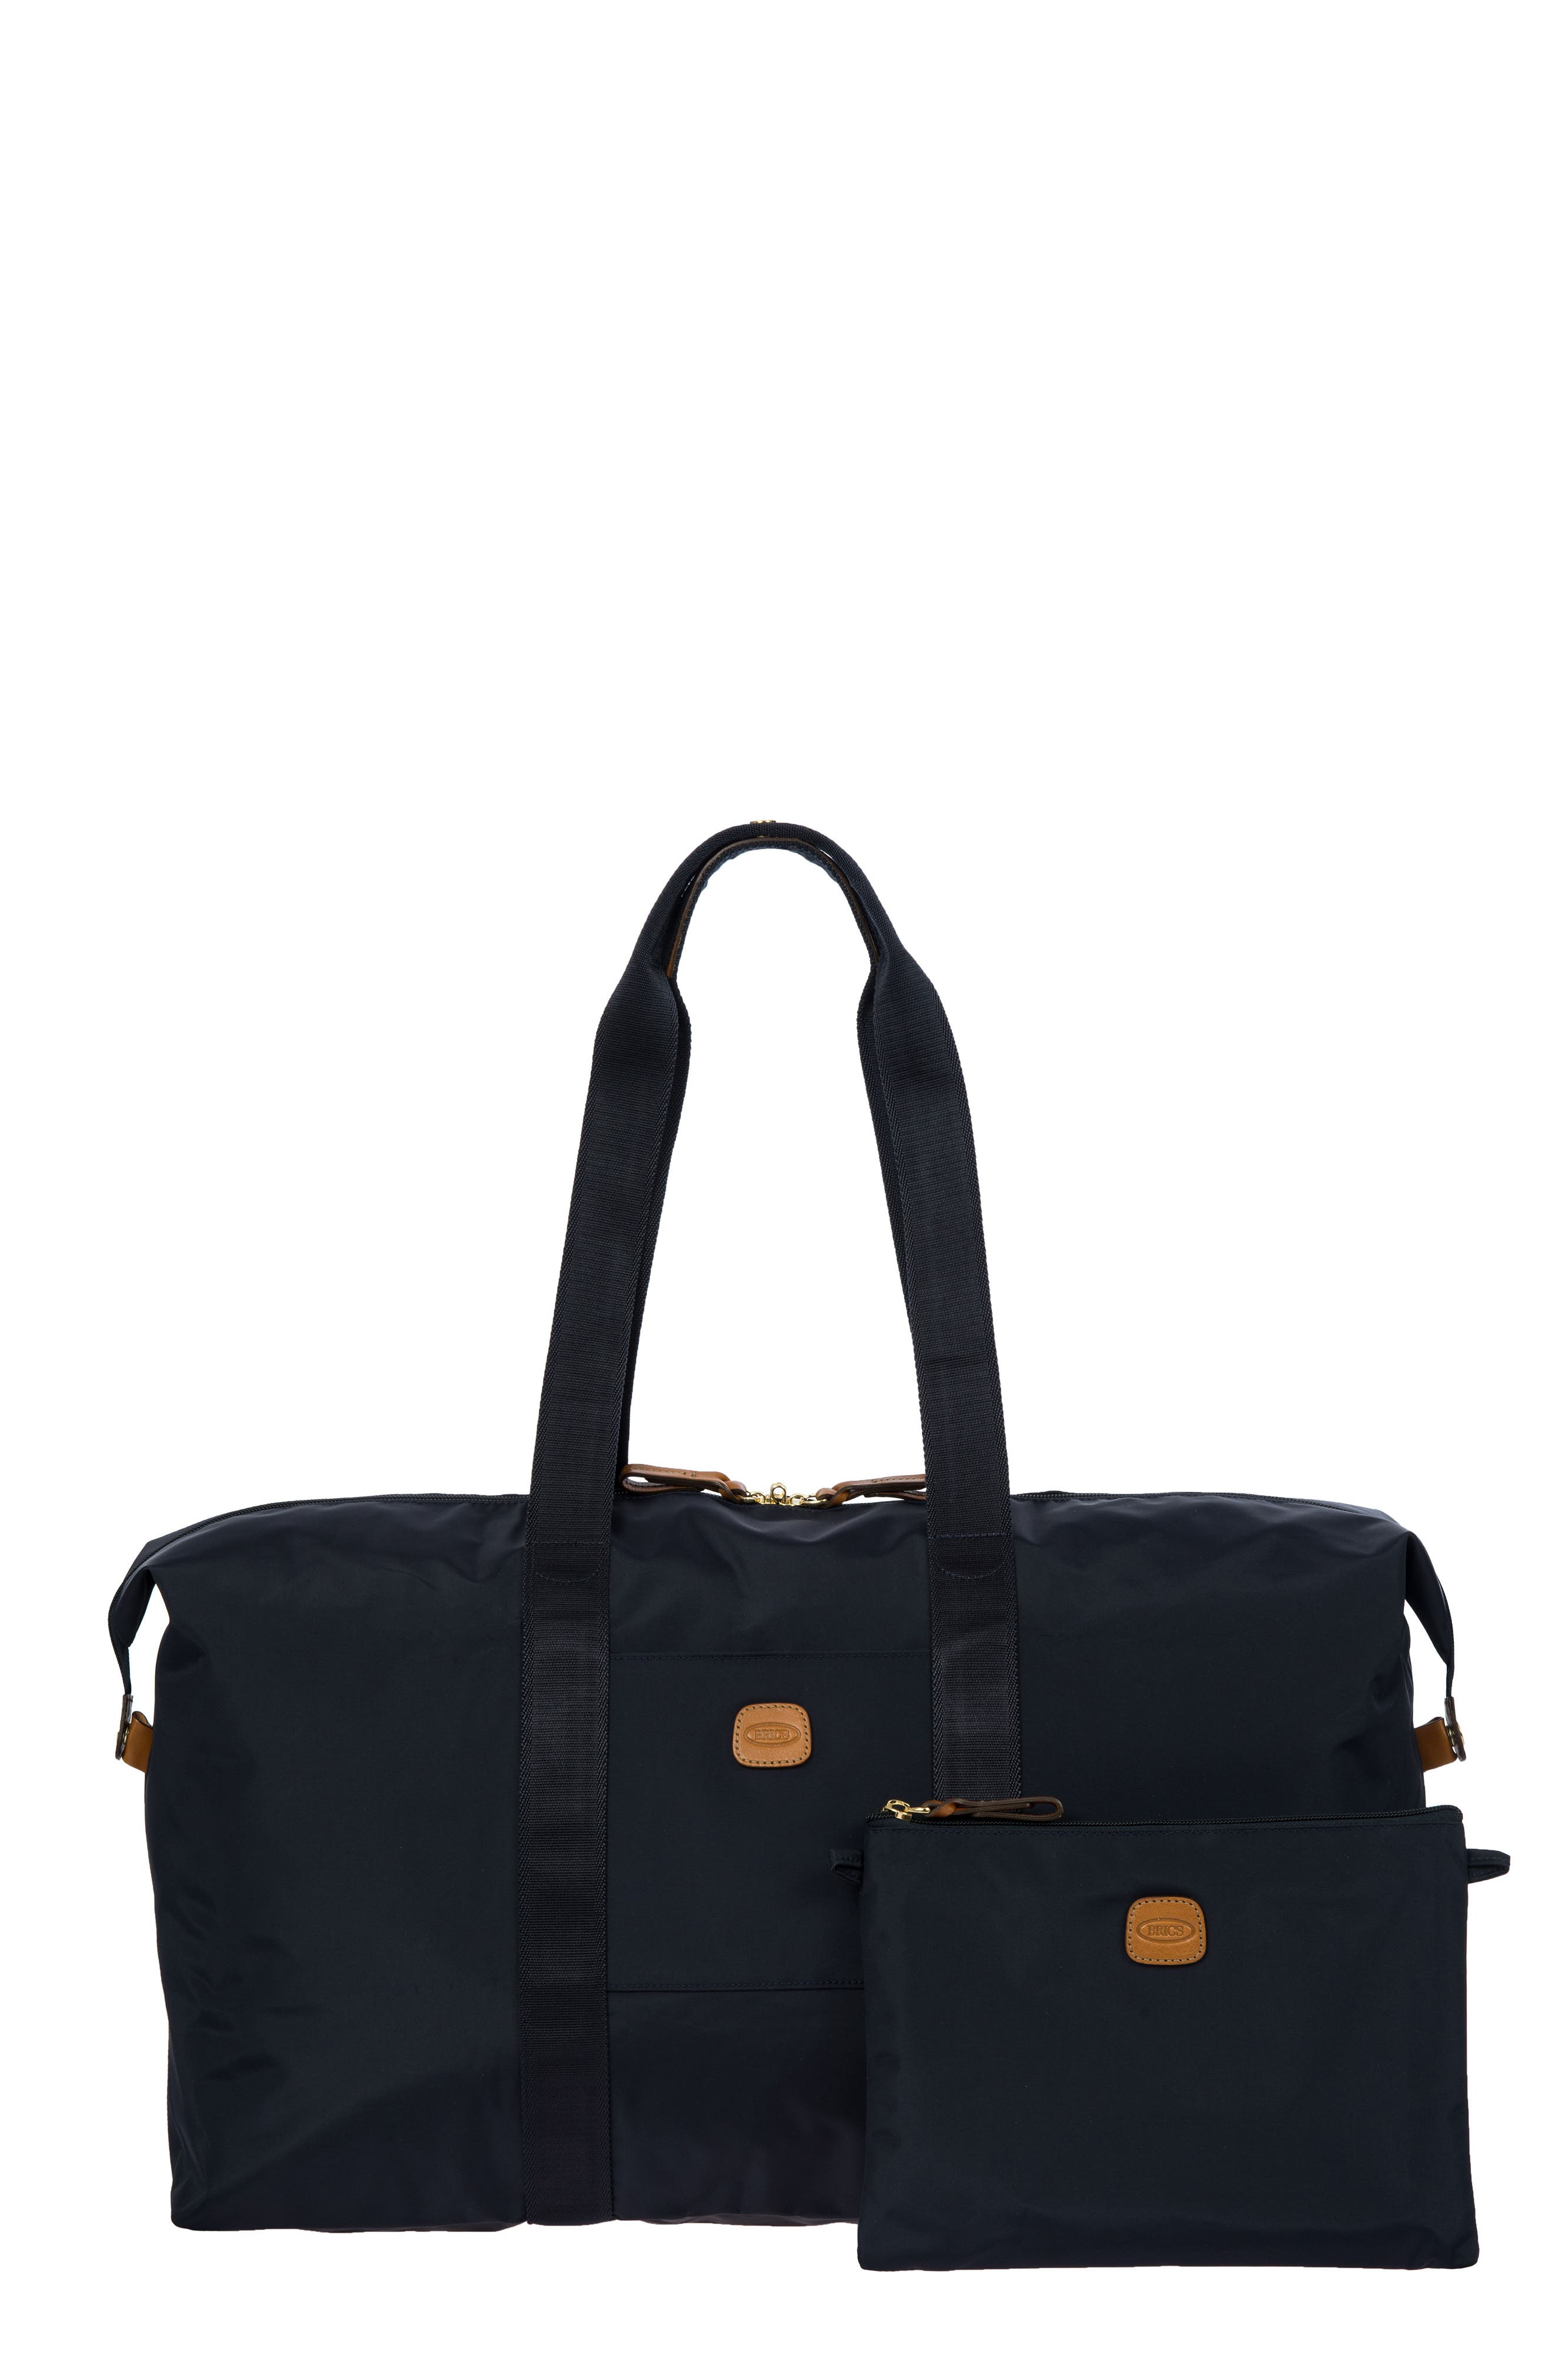 X-Bag 22-Inch Folding Duffel Bag,                             Alternate thumbnail 2, color,                             Navy